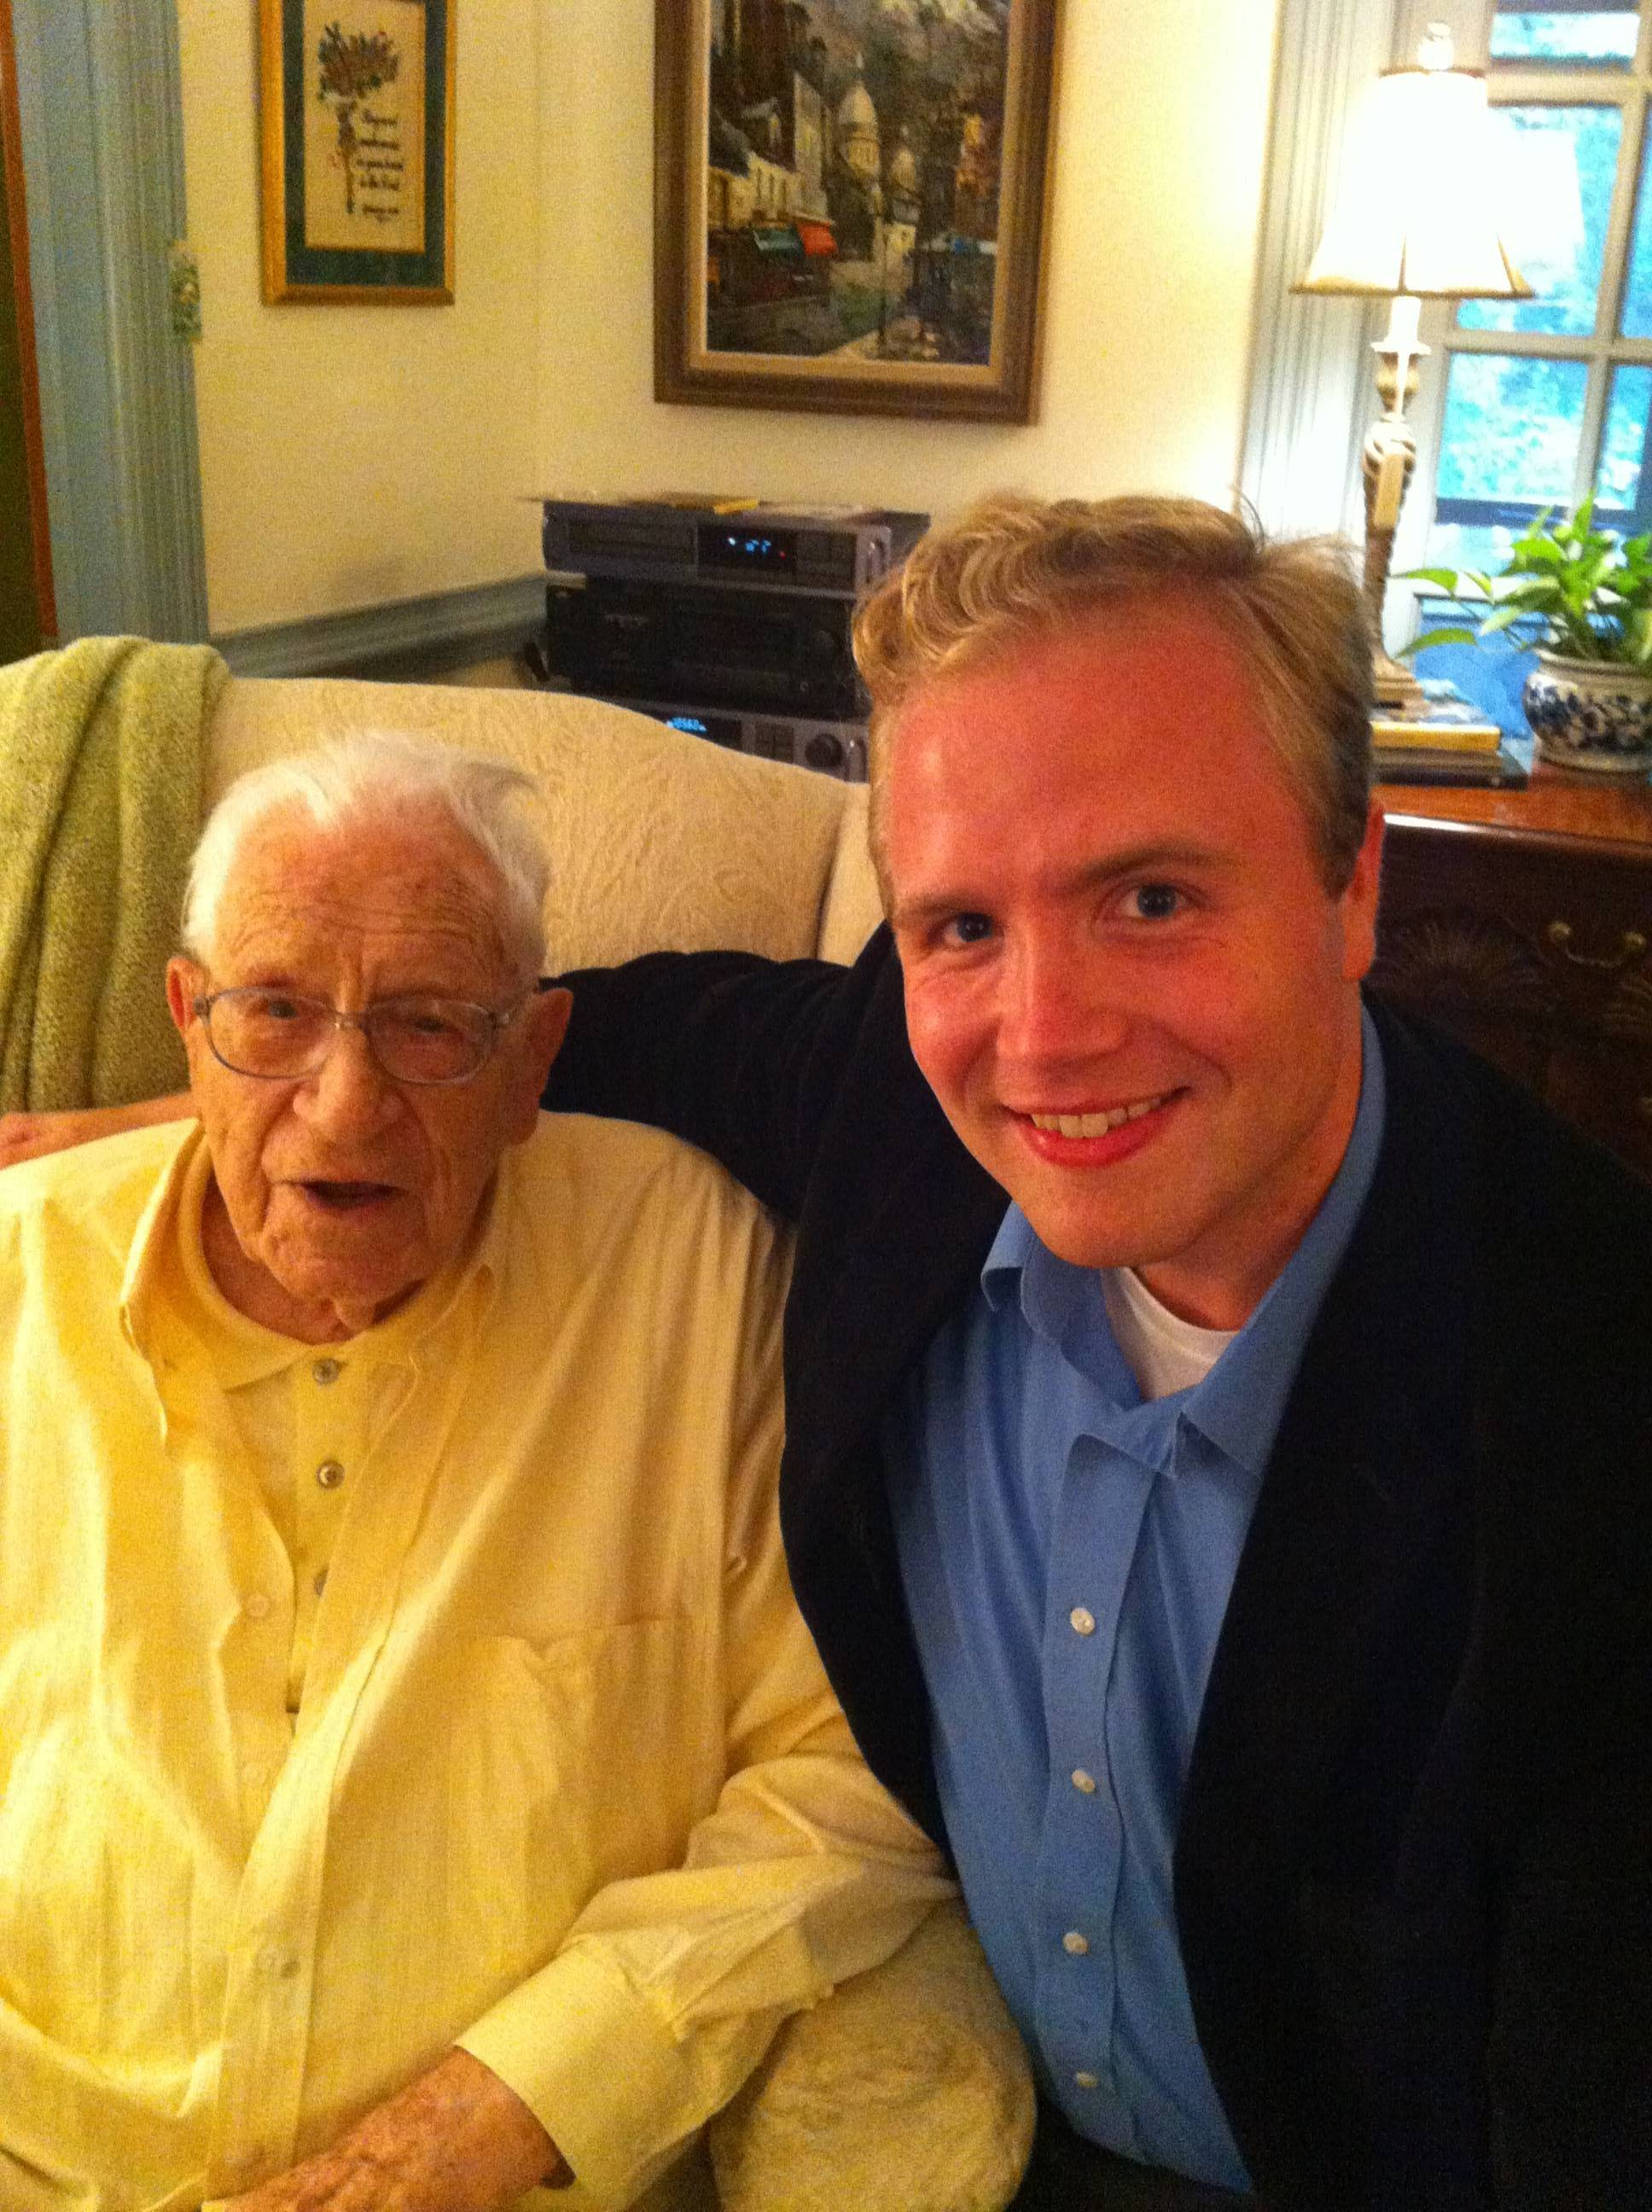 George Beverly Shea in his Montreat home with Nathaniel Olson